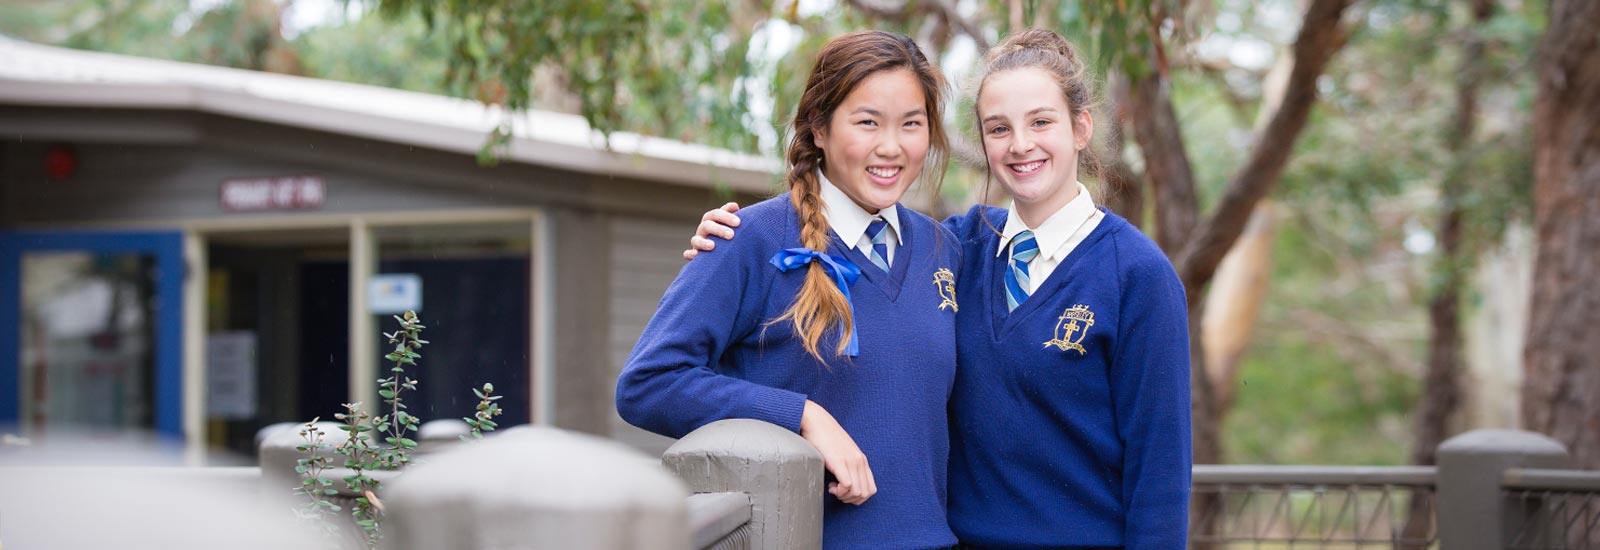 2019 College Captains